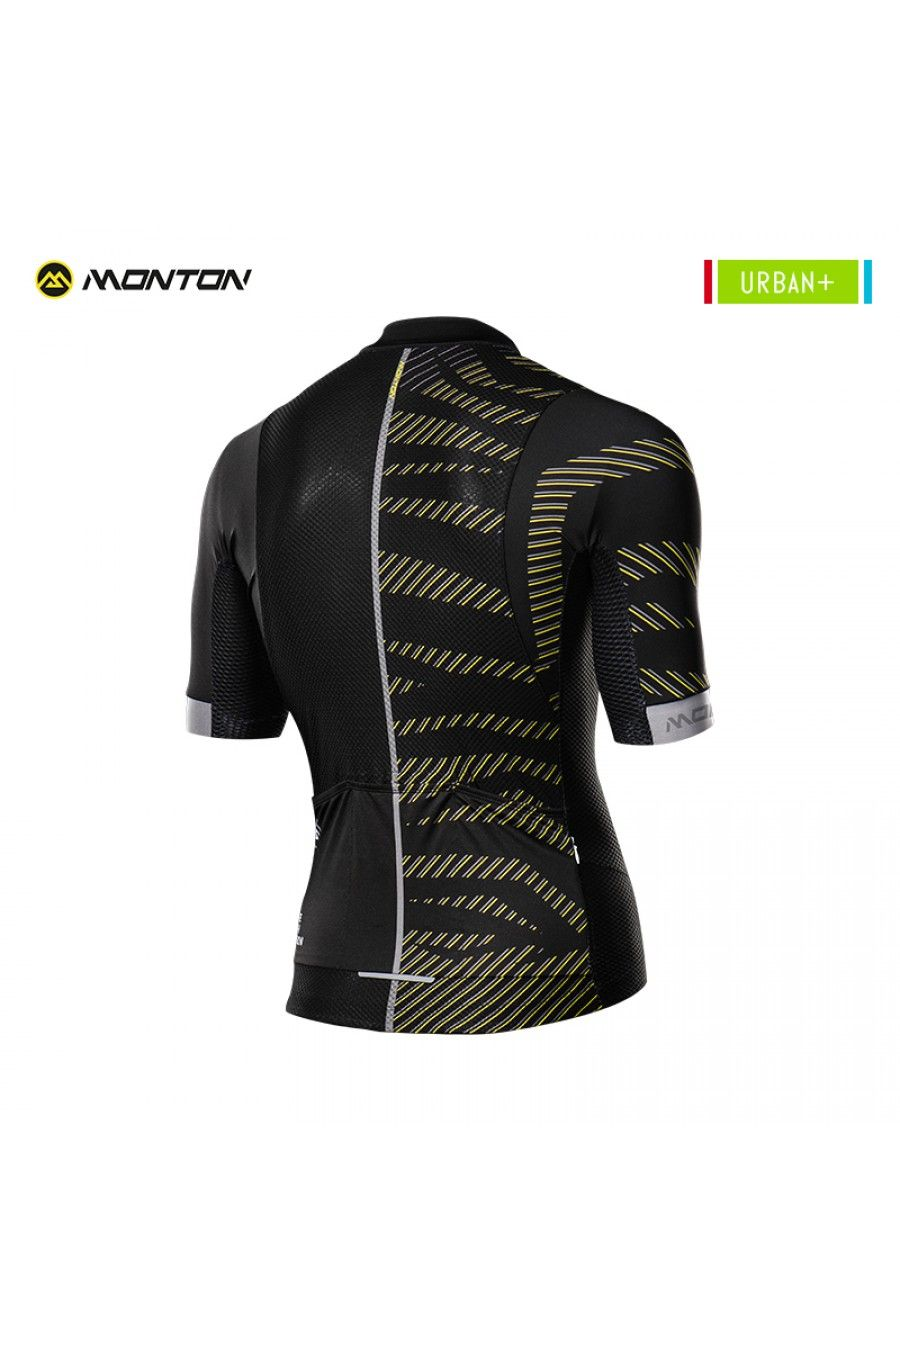 Black yellow cycling jersey  aab1a3344